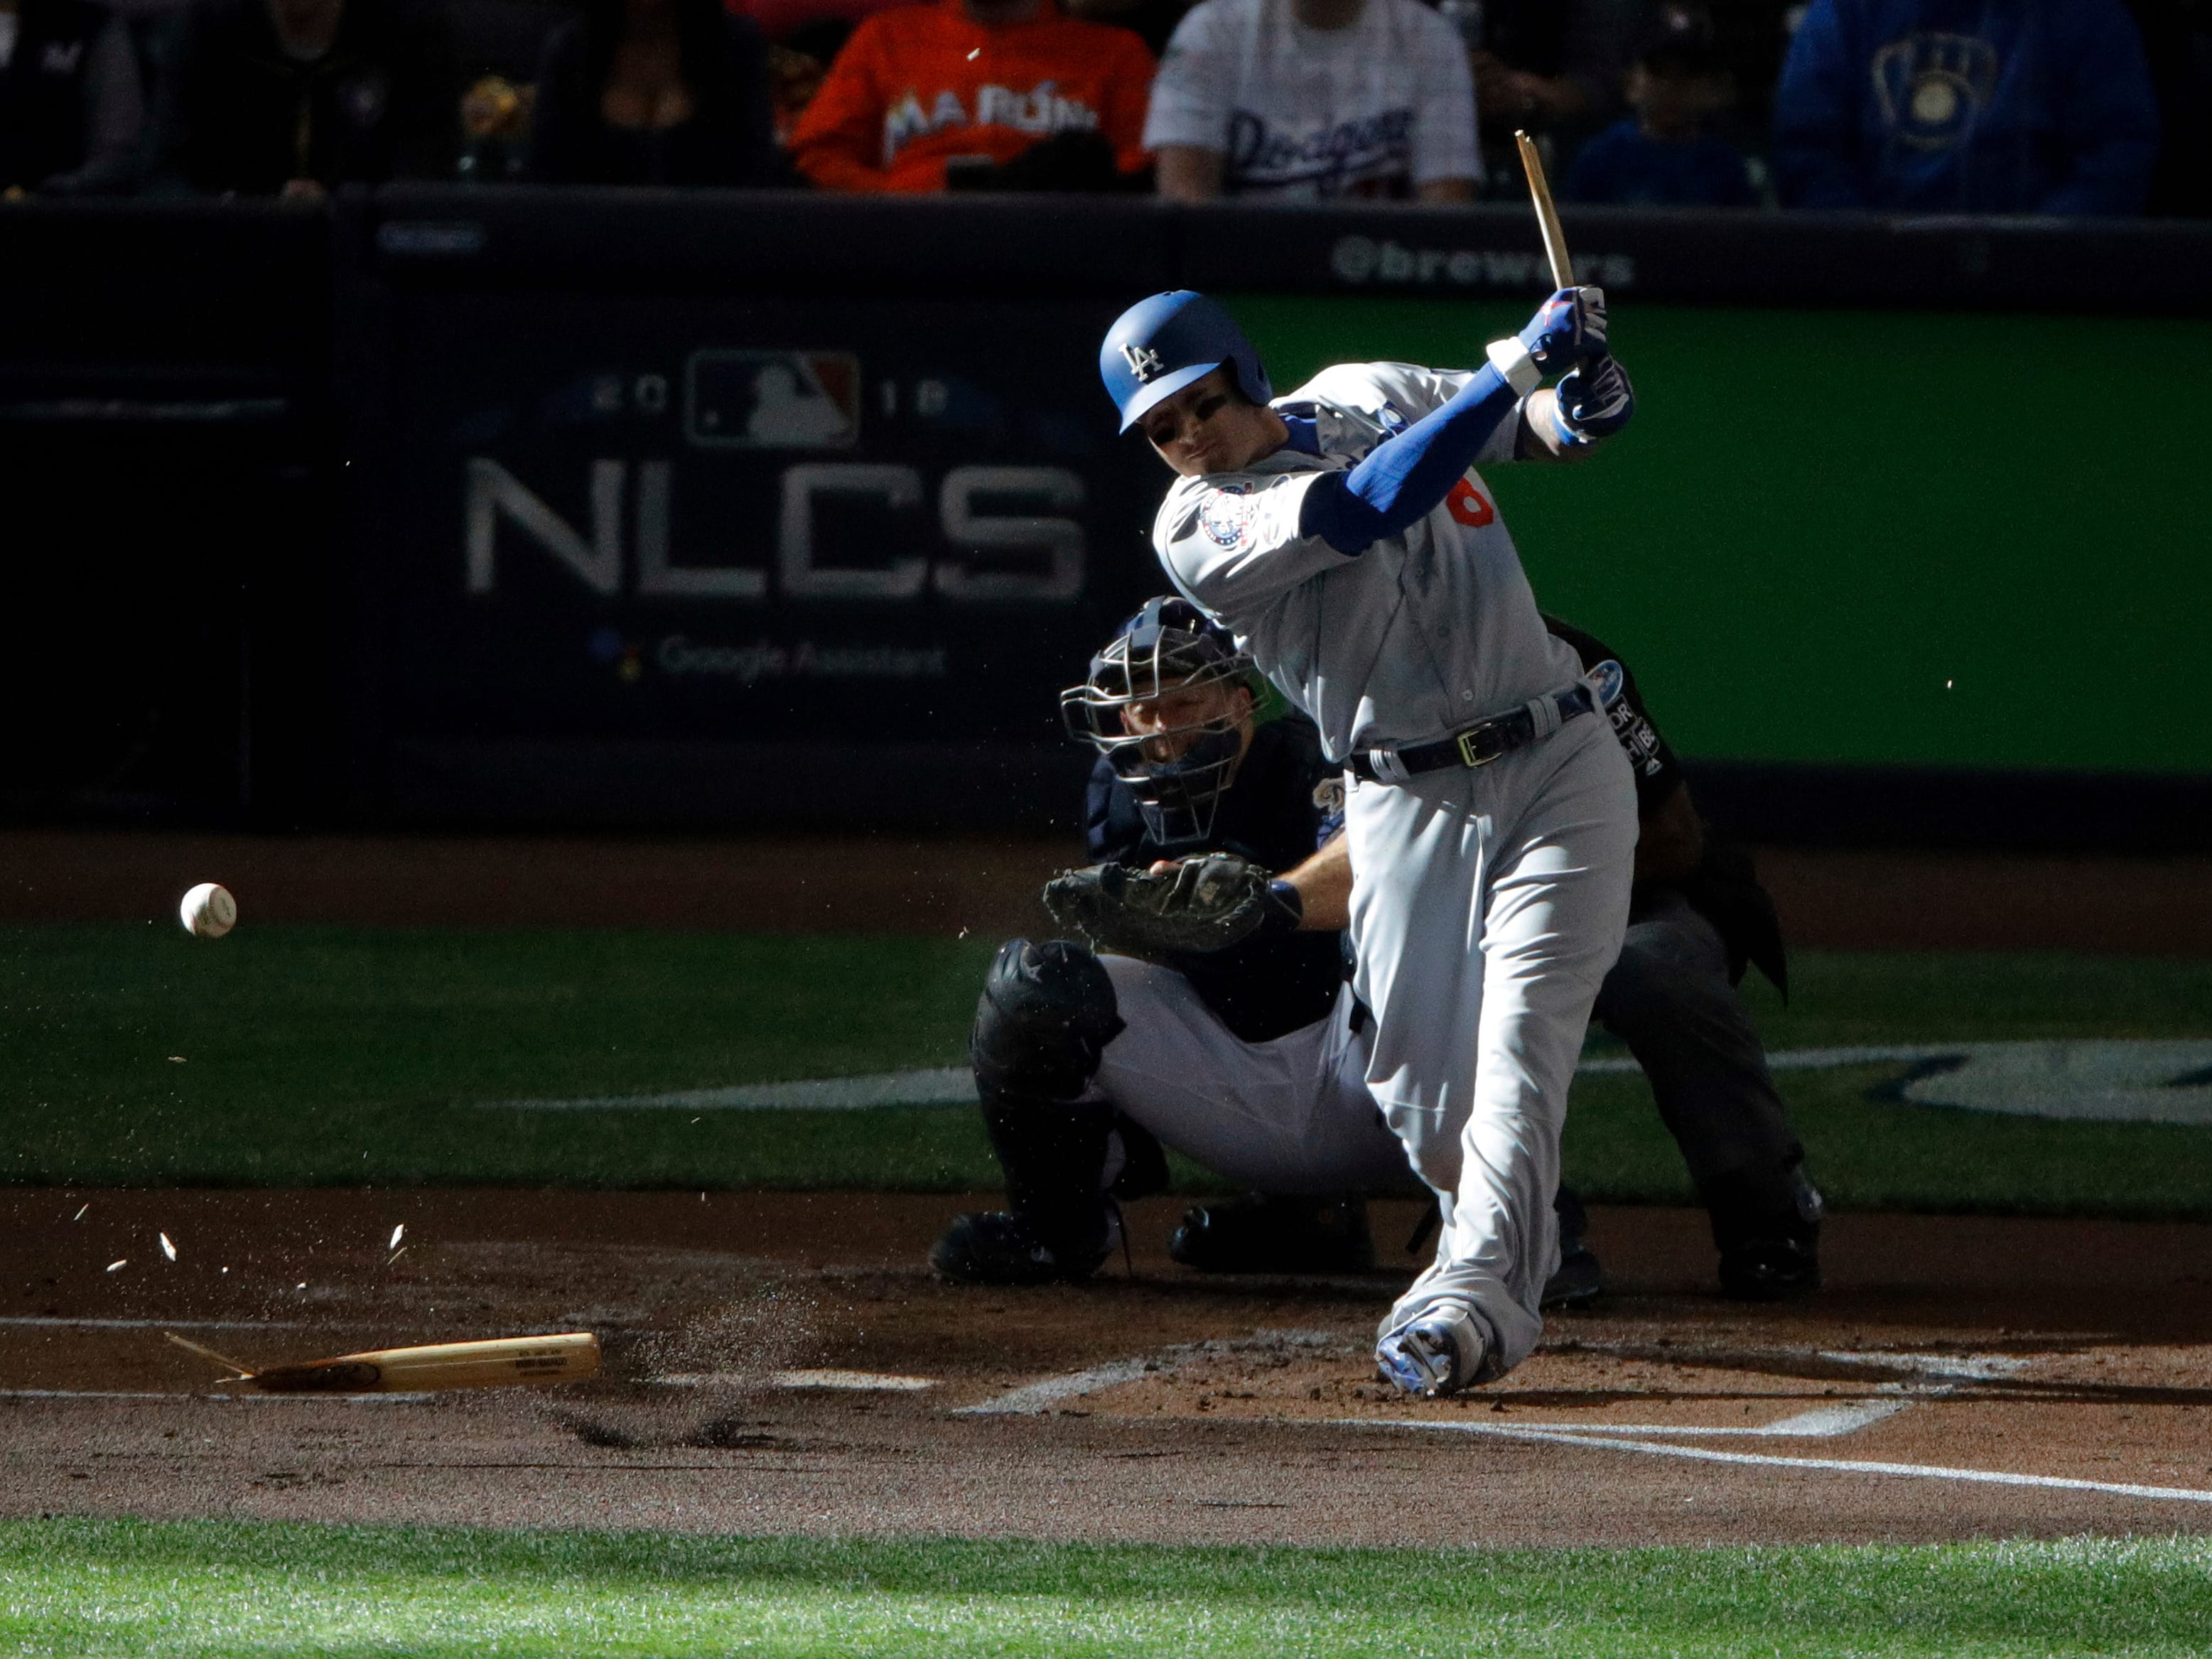 NLDS Game 2: Dodgers' Manny Machado shatters his bat in the first inning.